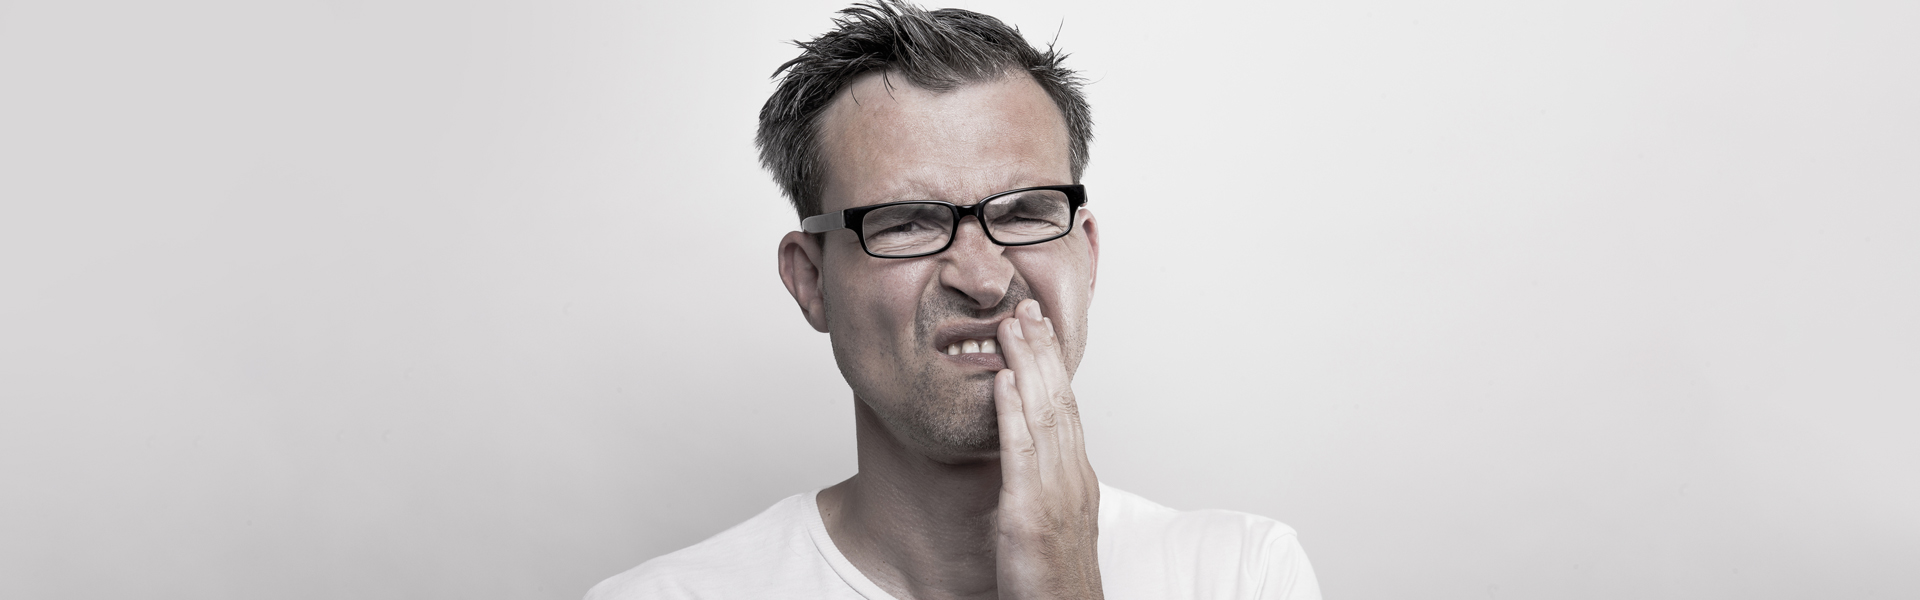 Why Are Dental Emergencies Delicate and How Should They Be Handled?